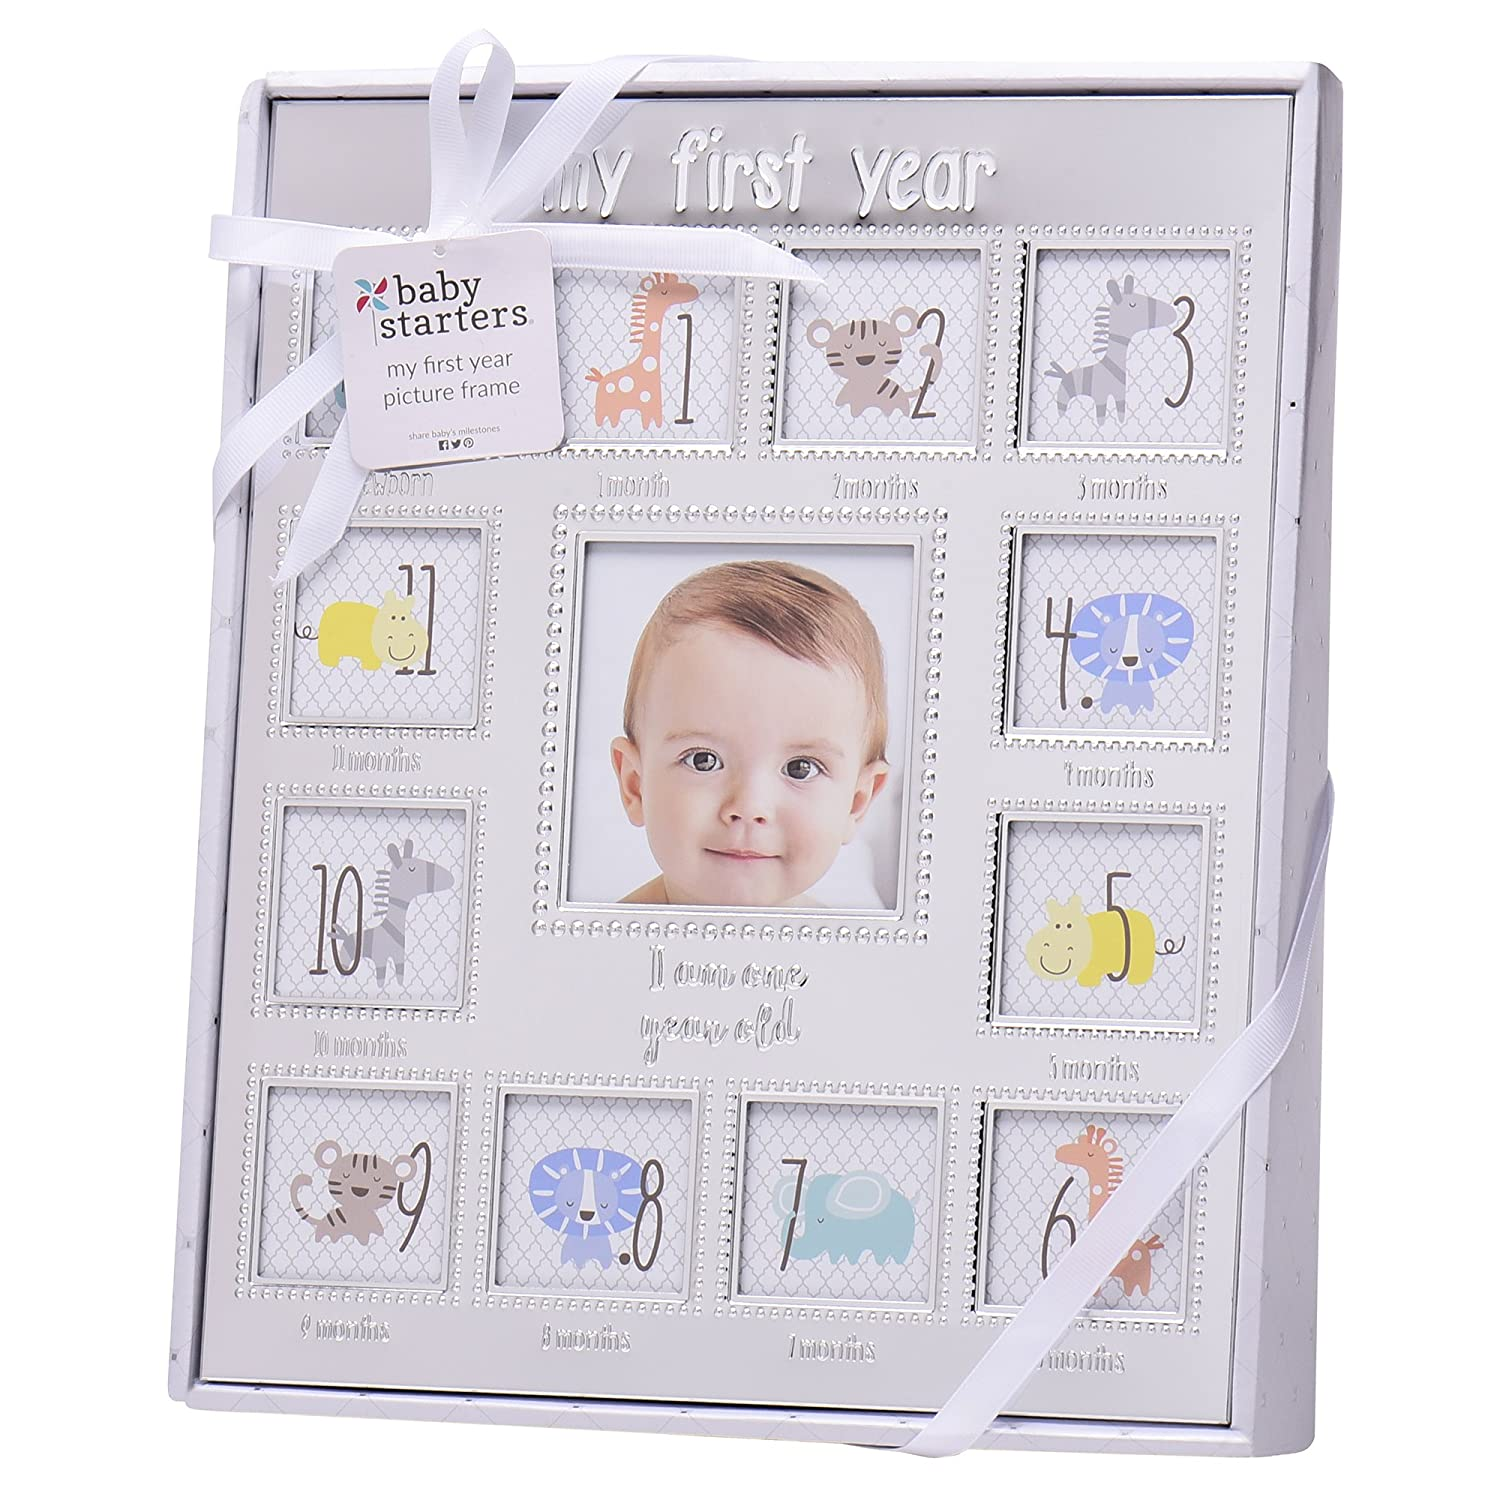 Amazon.com : Baby Starters My First Year Picture Frame, Silver : Baby